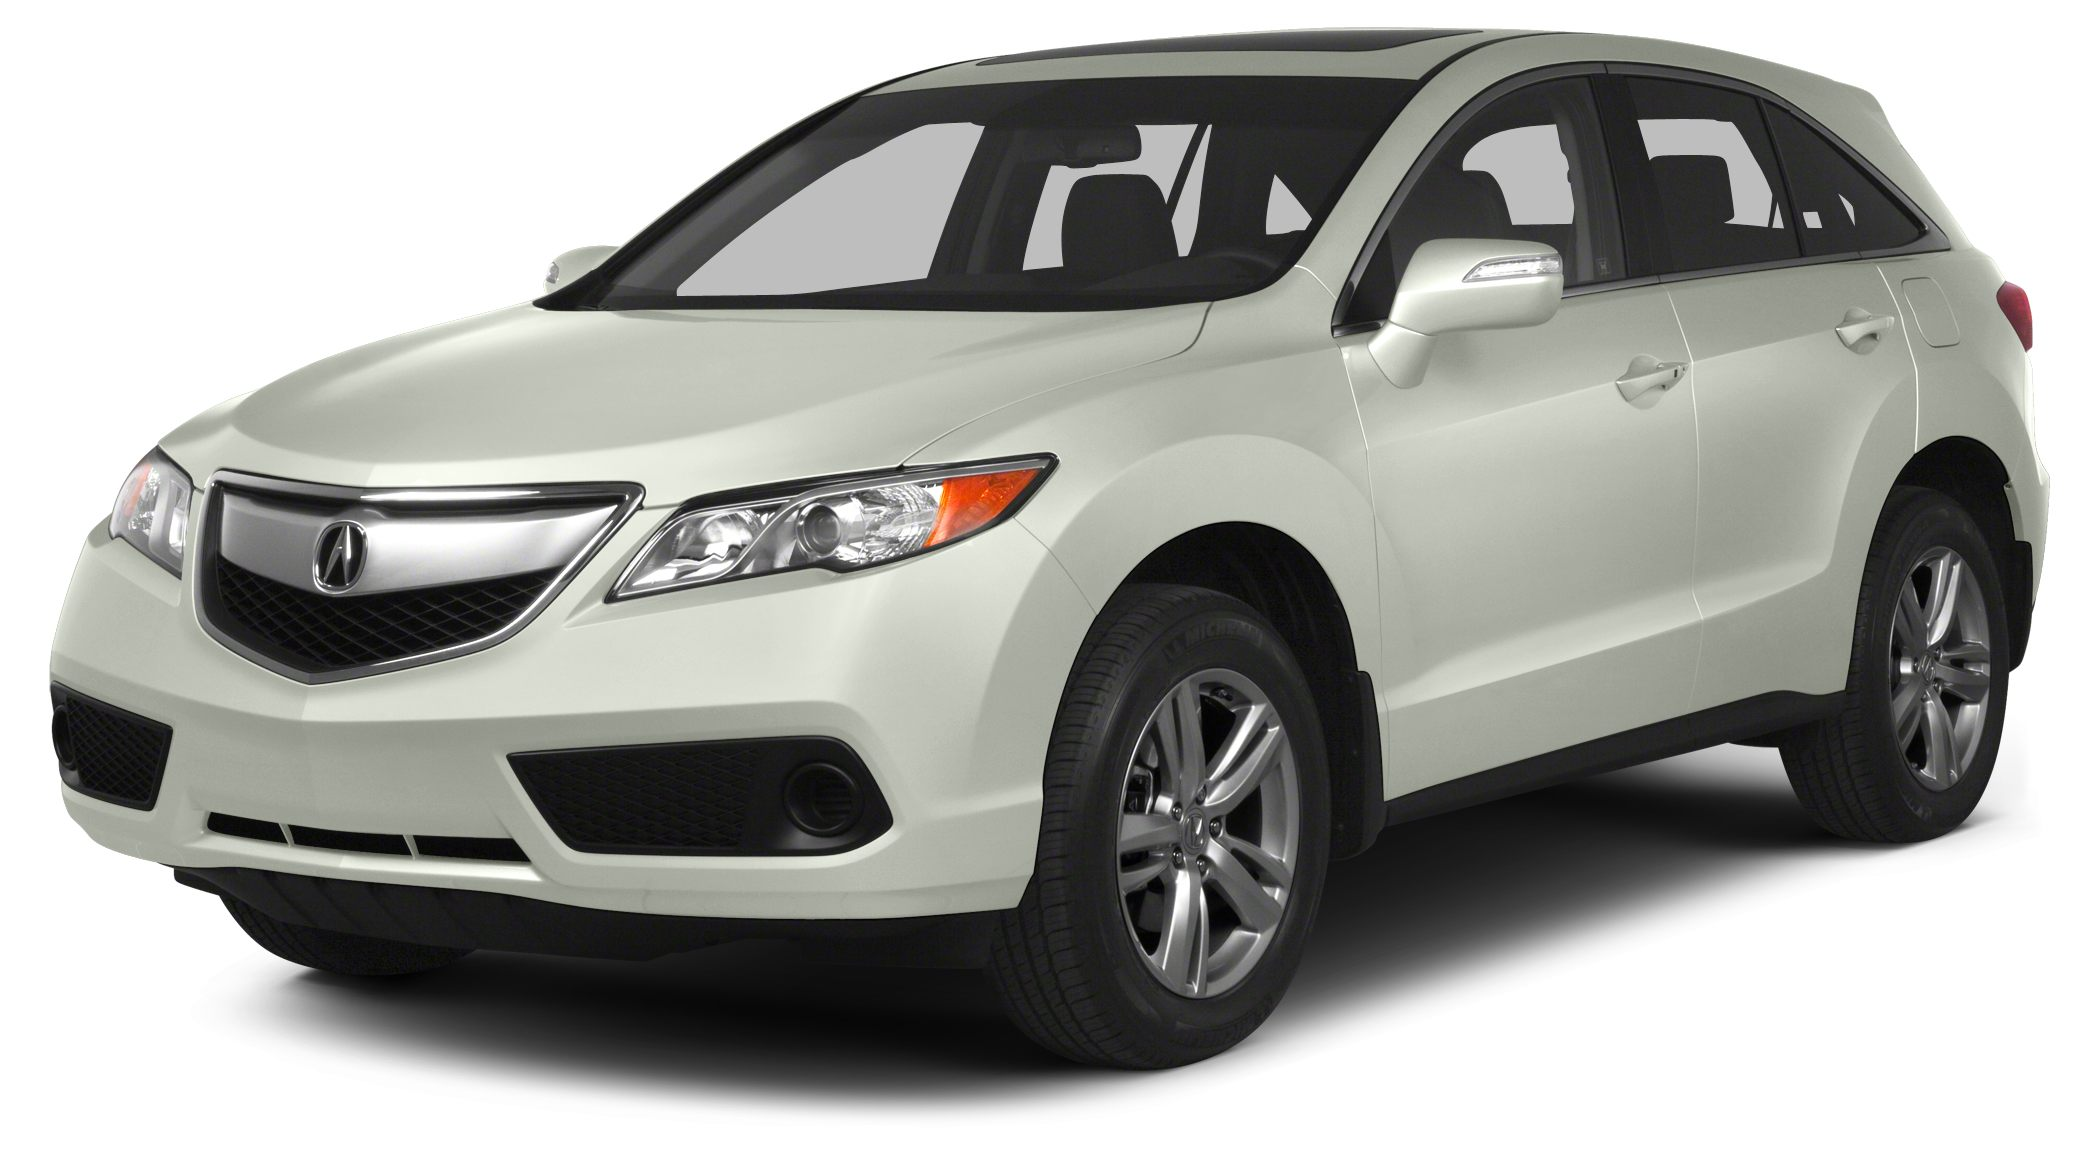 2013 Acura RDX Technology Hassle Free Price Low miles Acura RDX Well kept scratch less interior